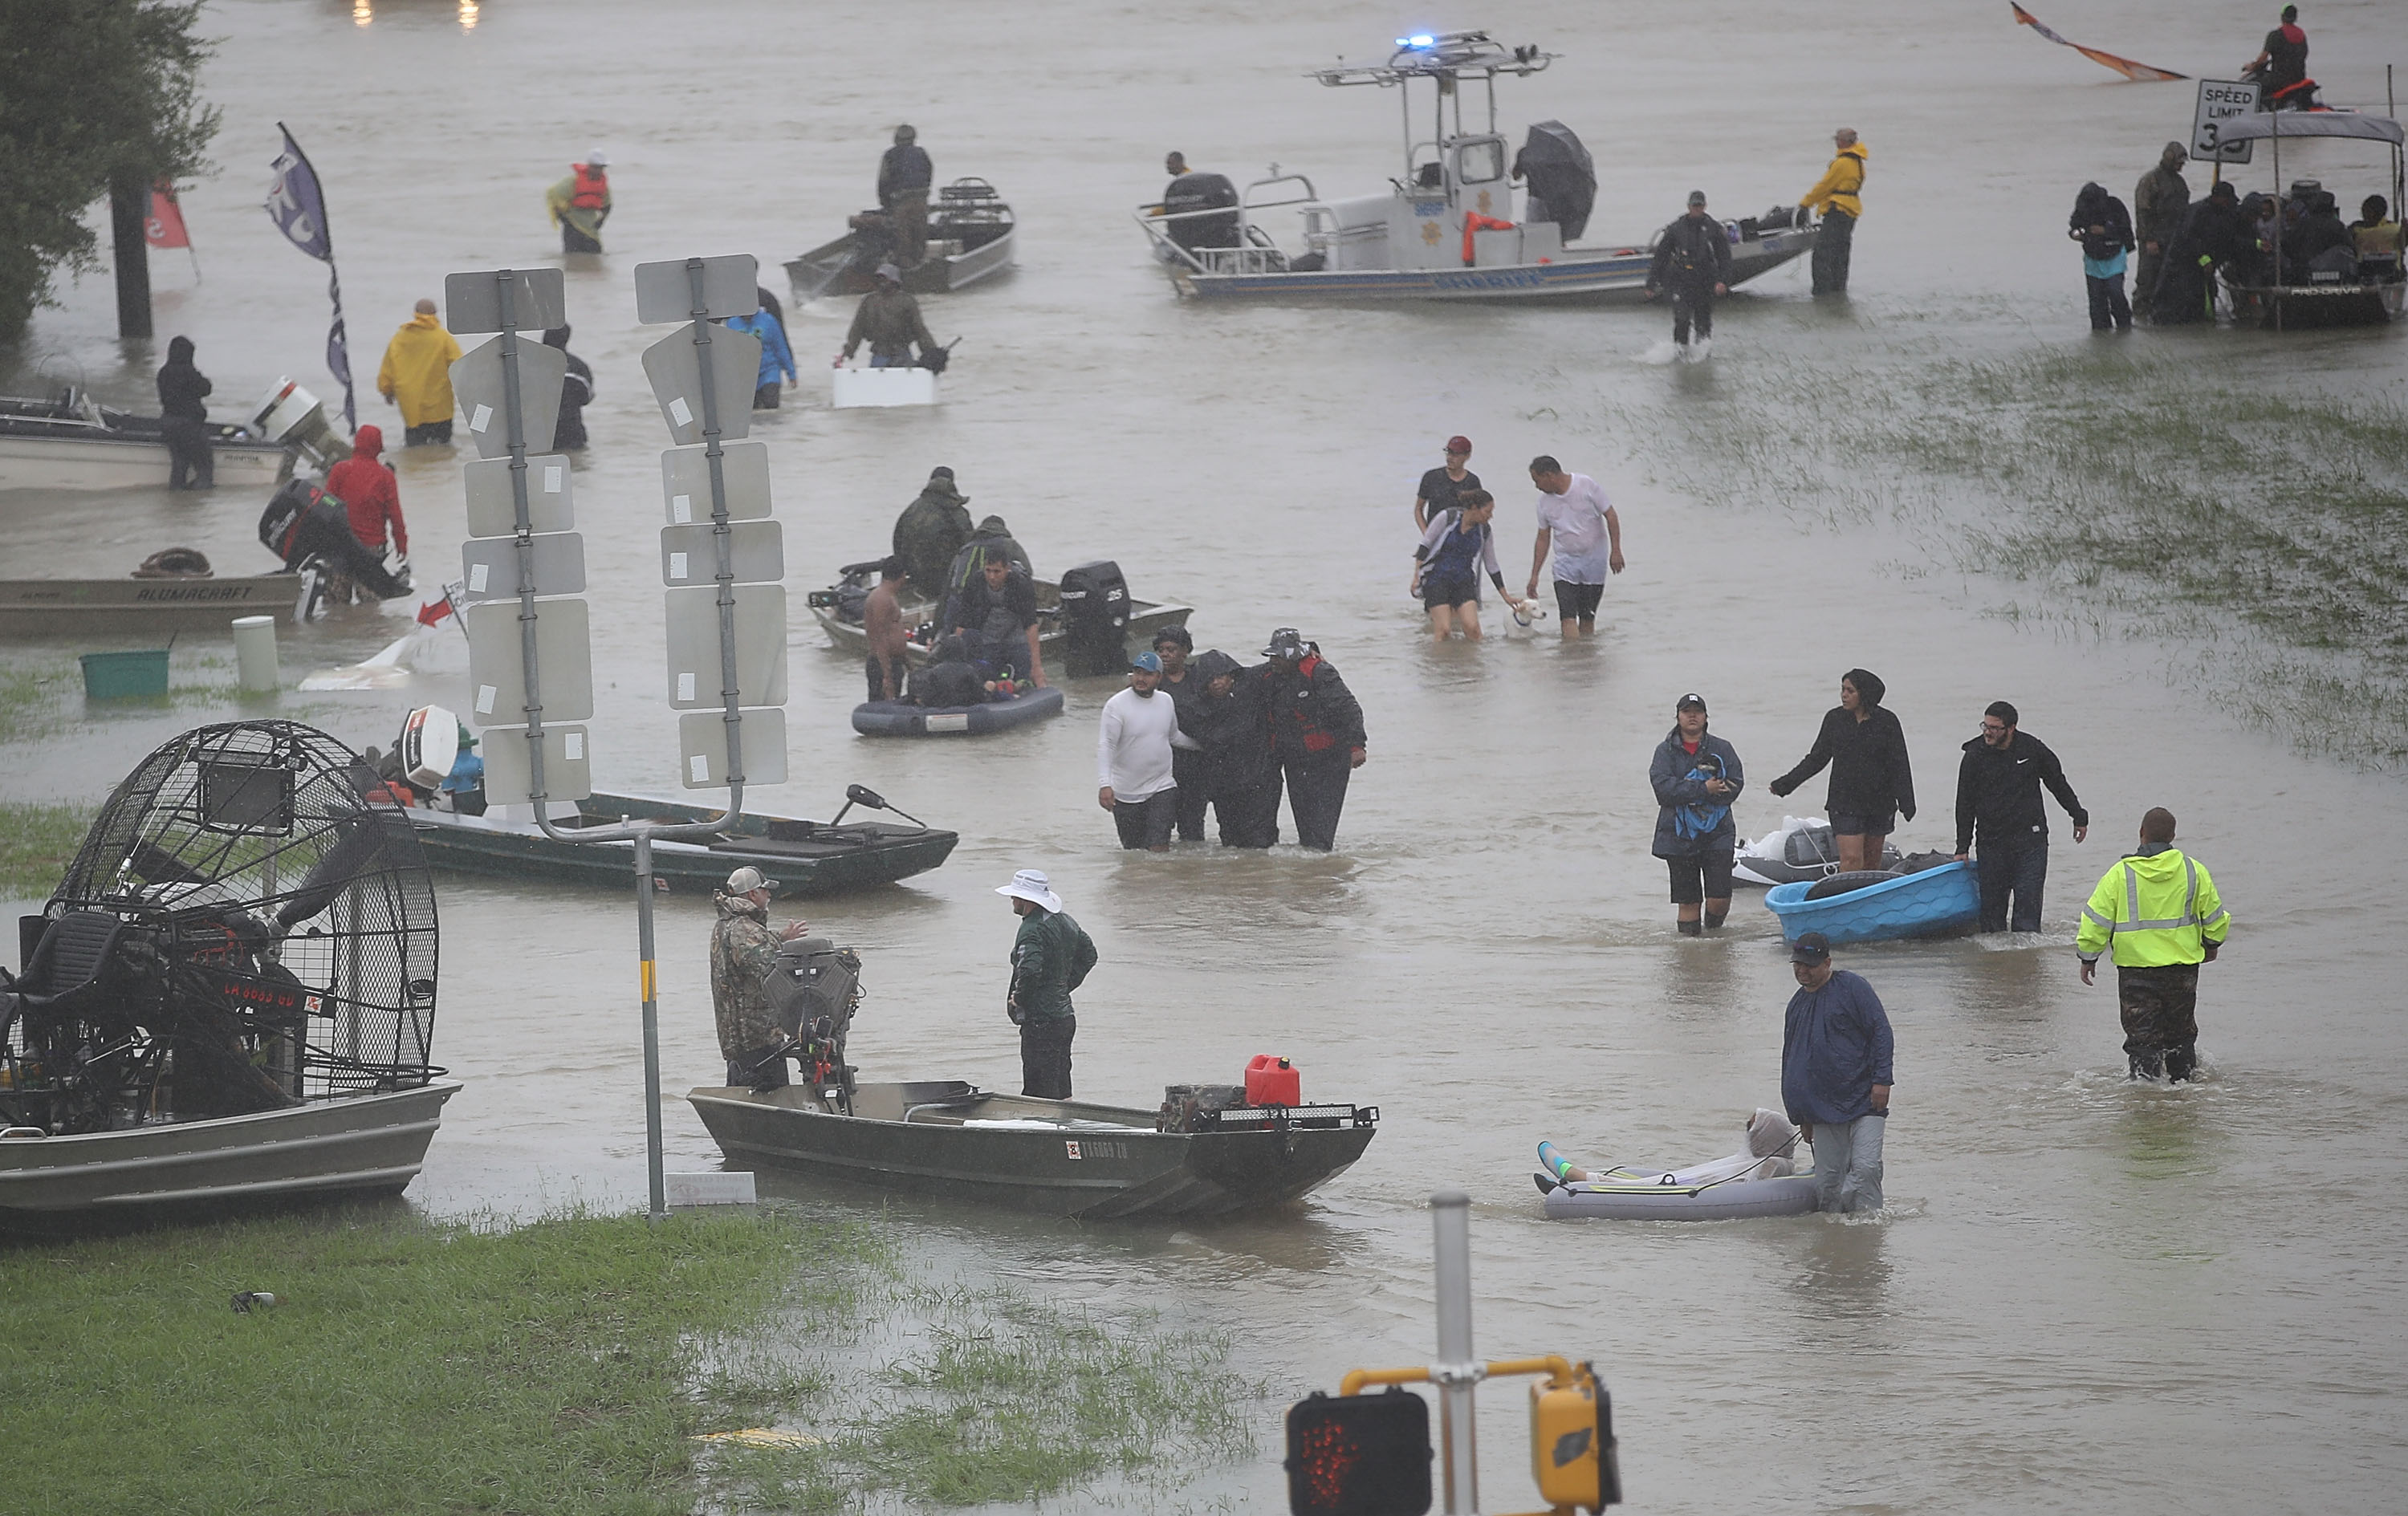 By Ending DACA, Trump Demonizes Recipients Like the Tejanos Who Risked Their Lives During Harvey